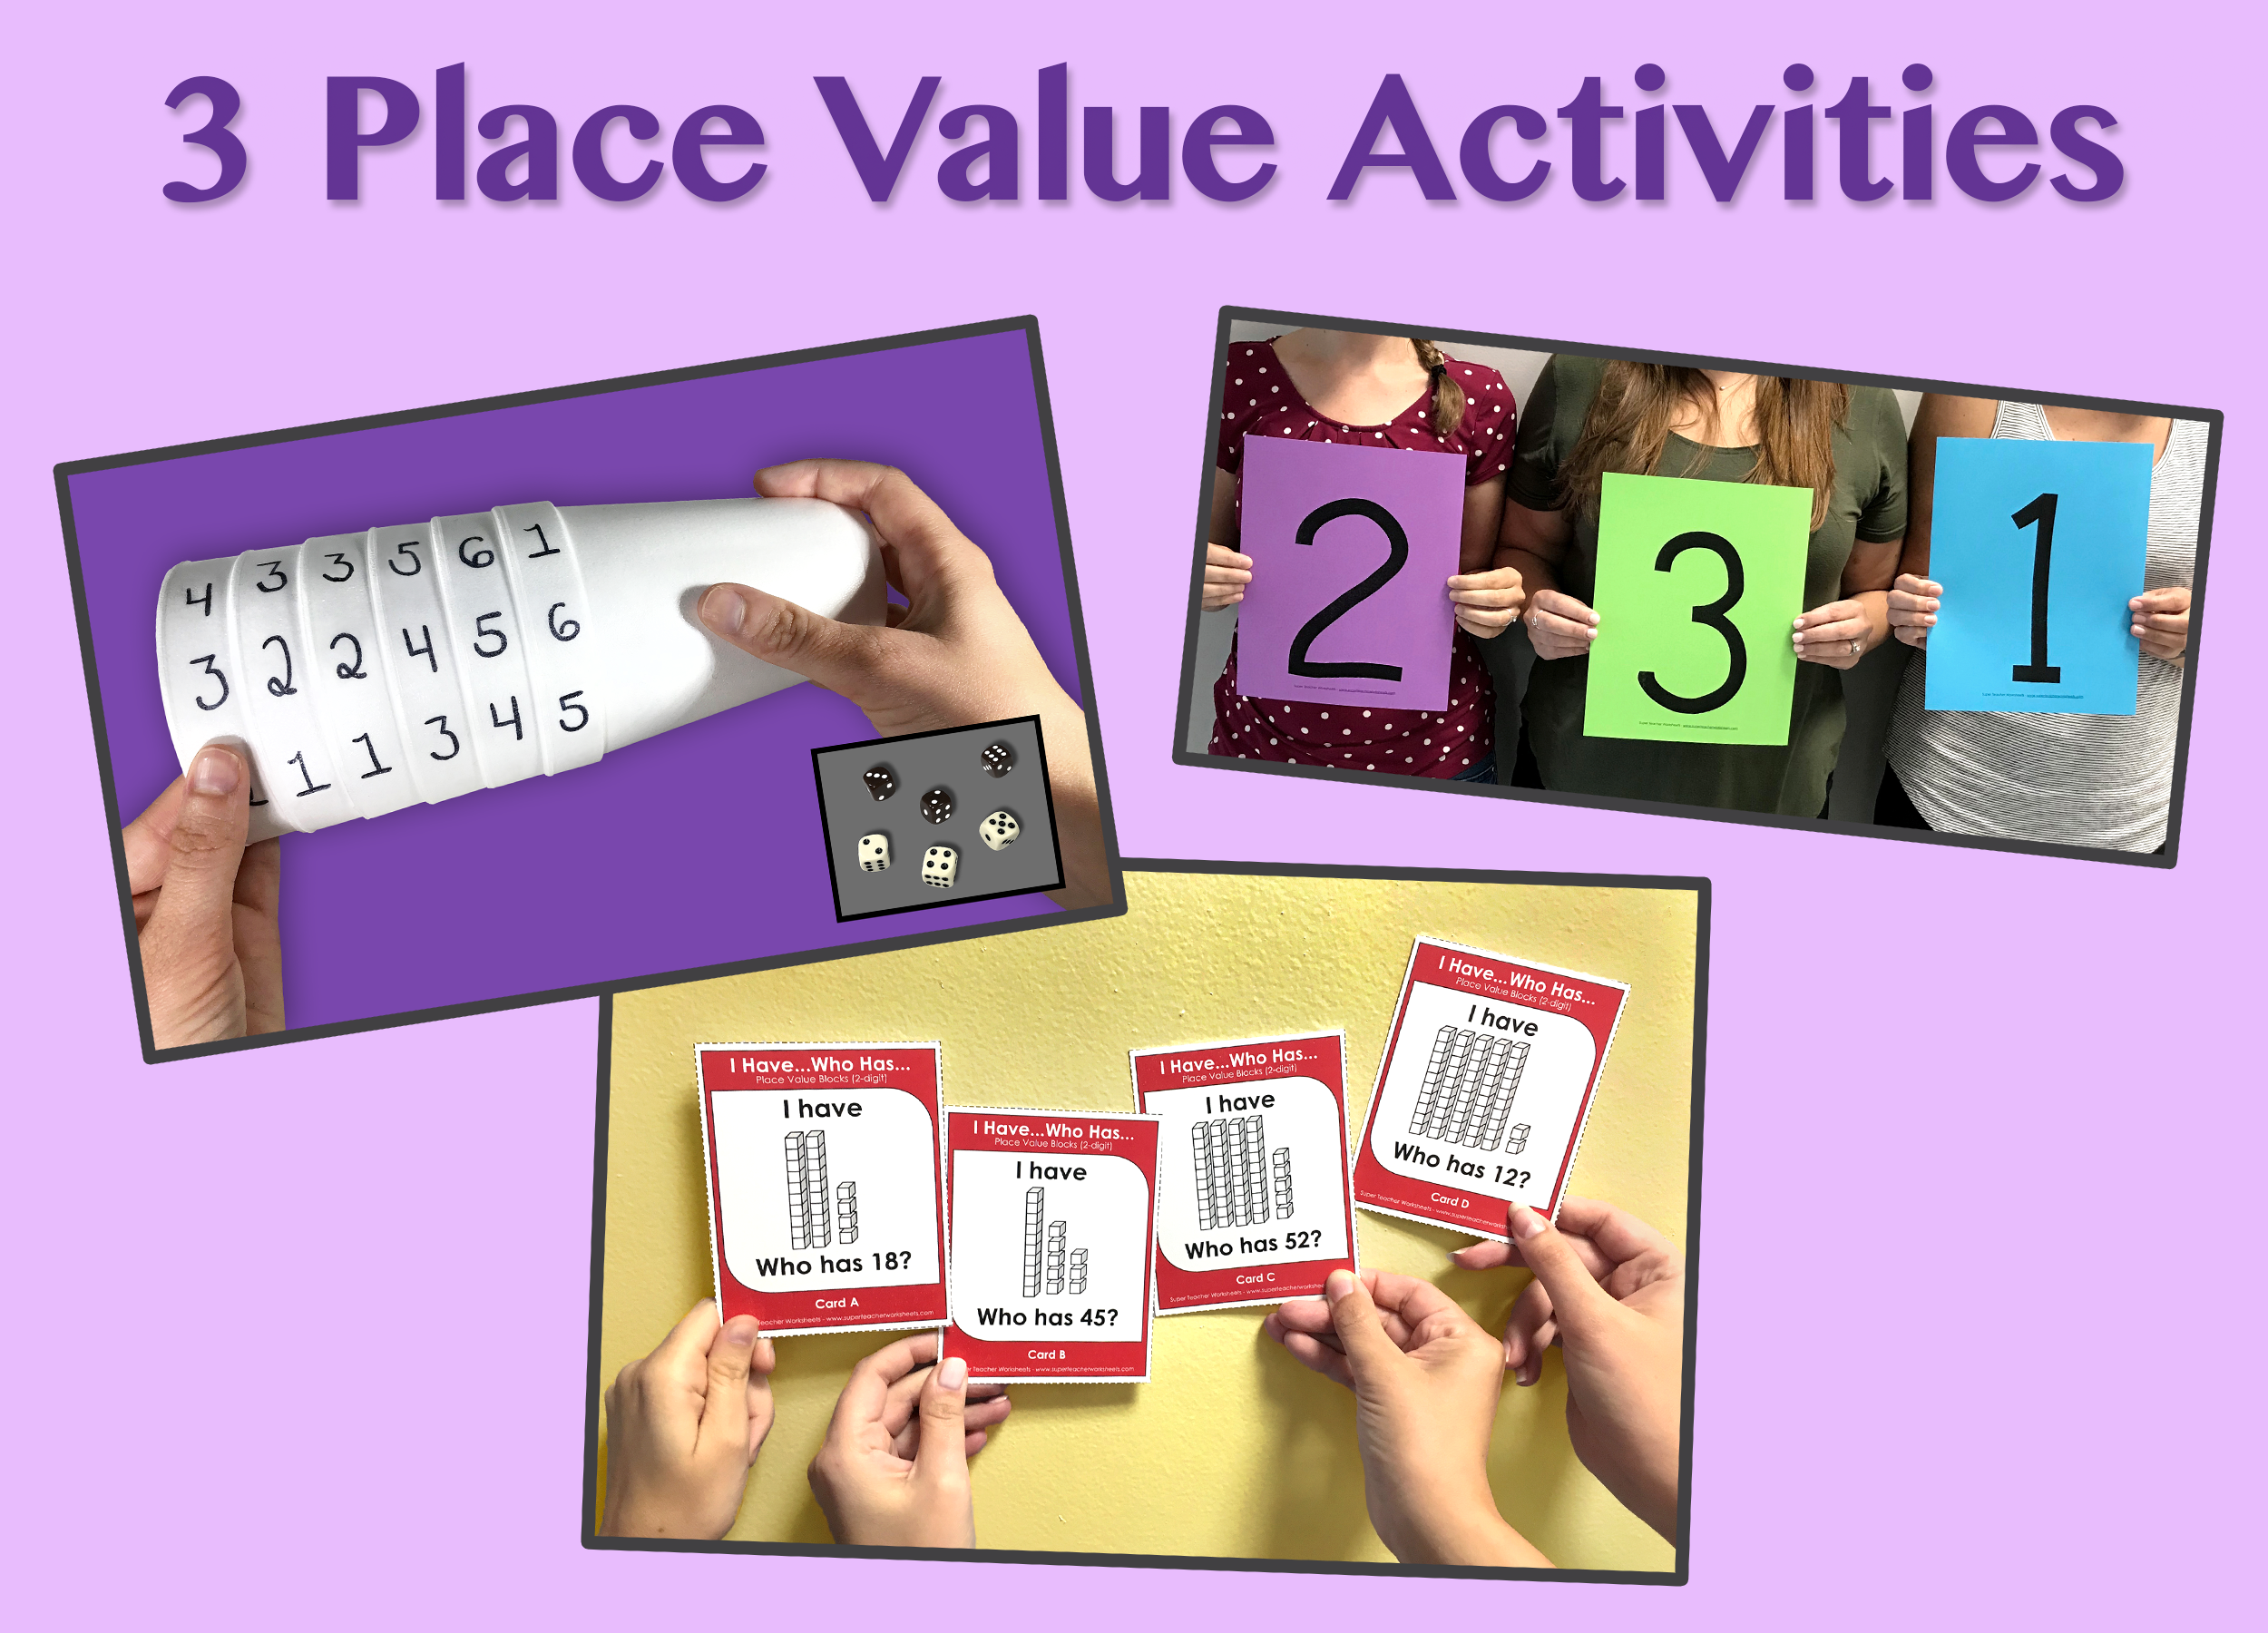 Place Value Activities!